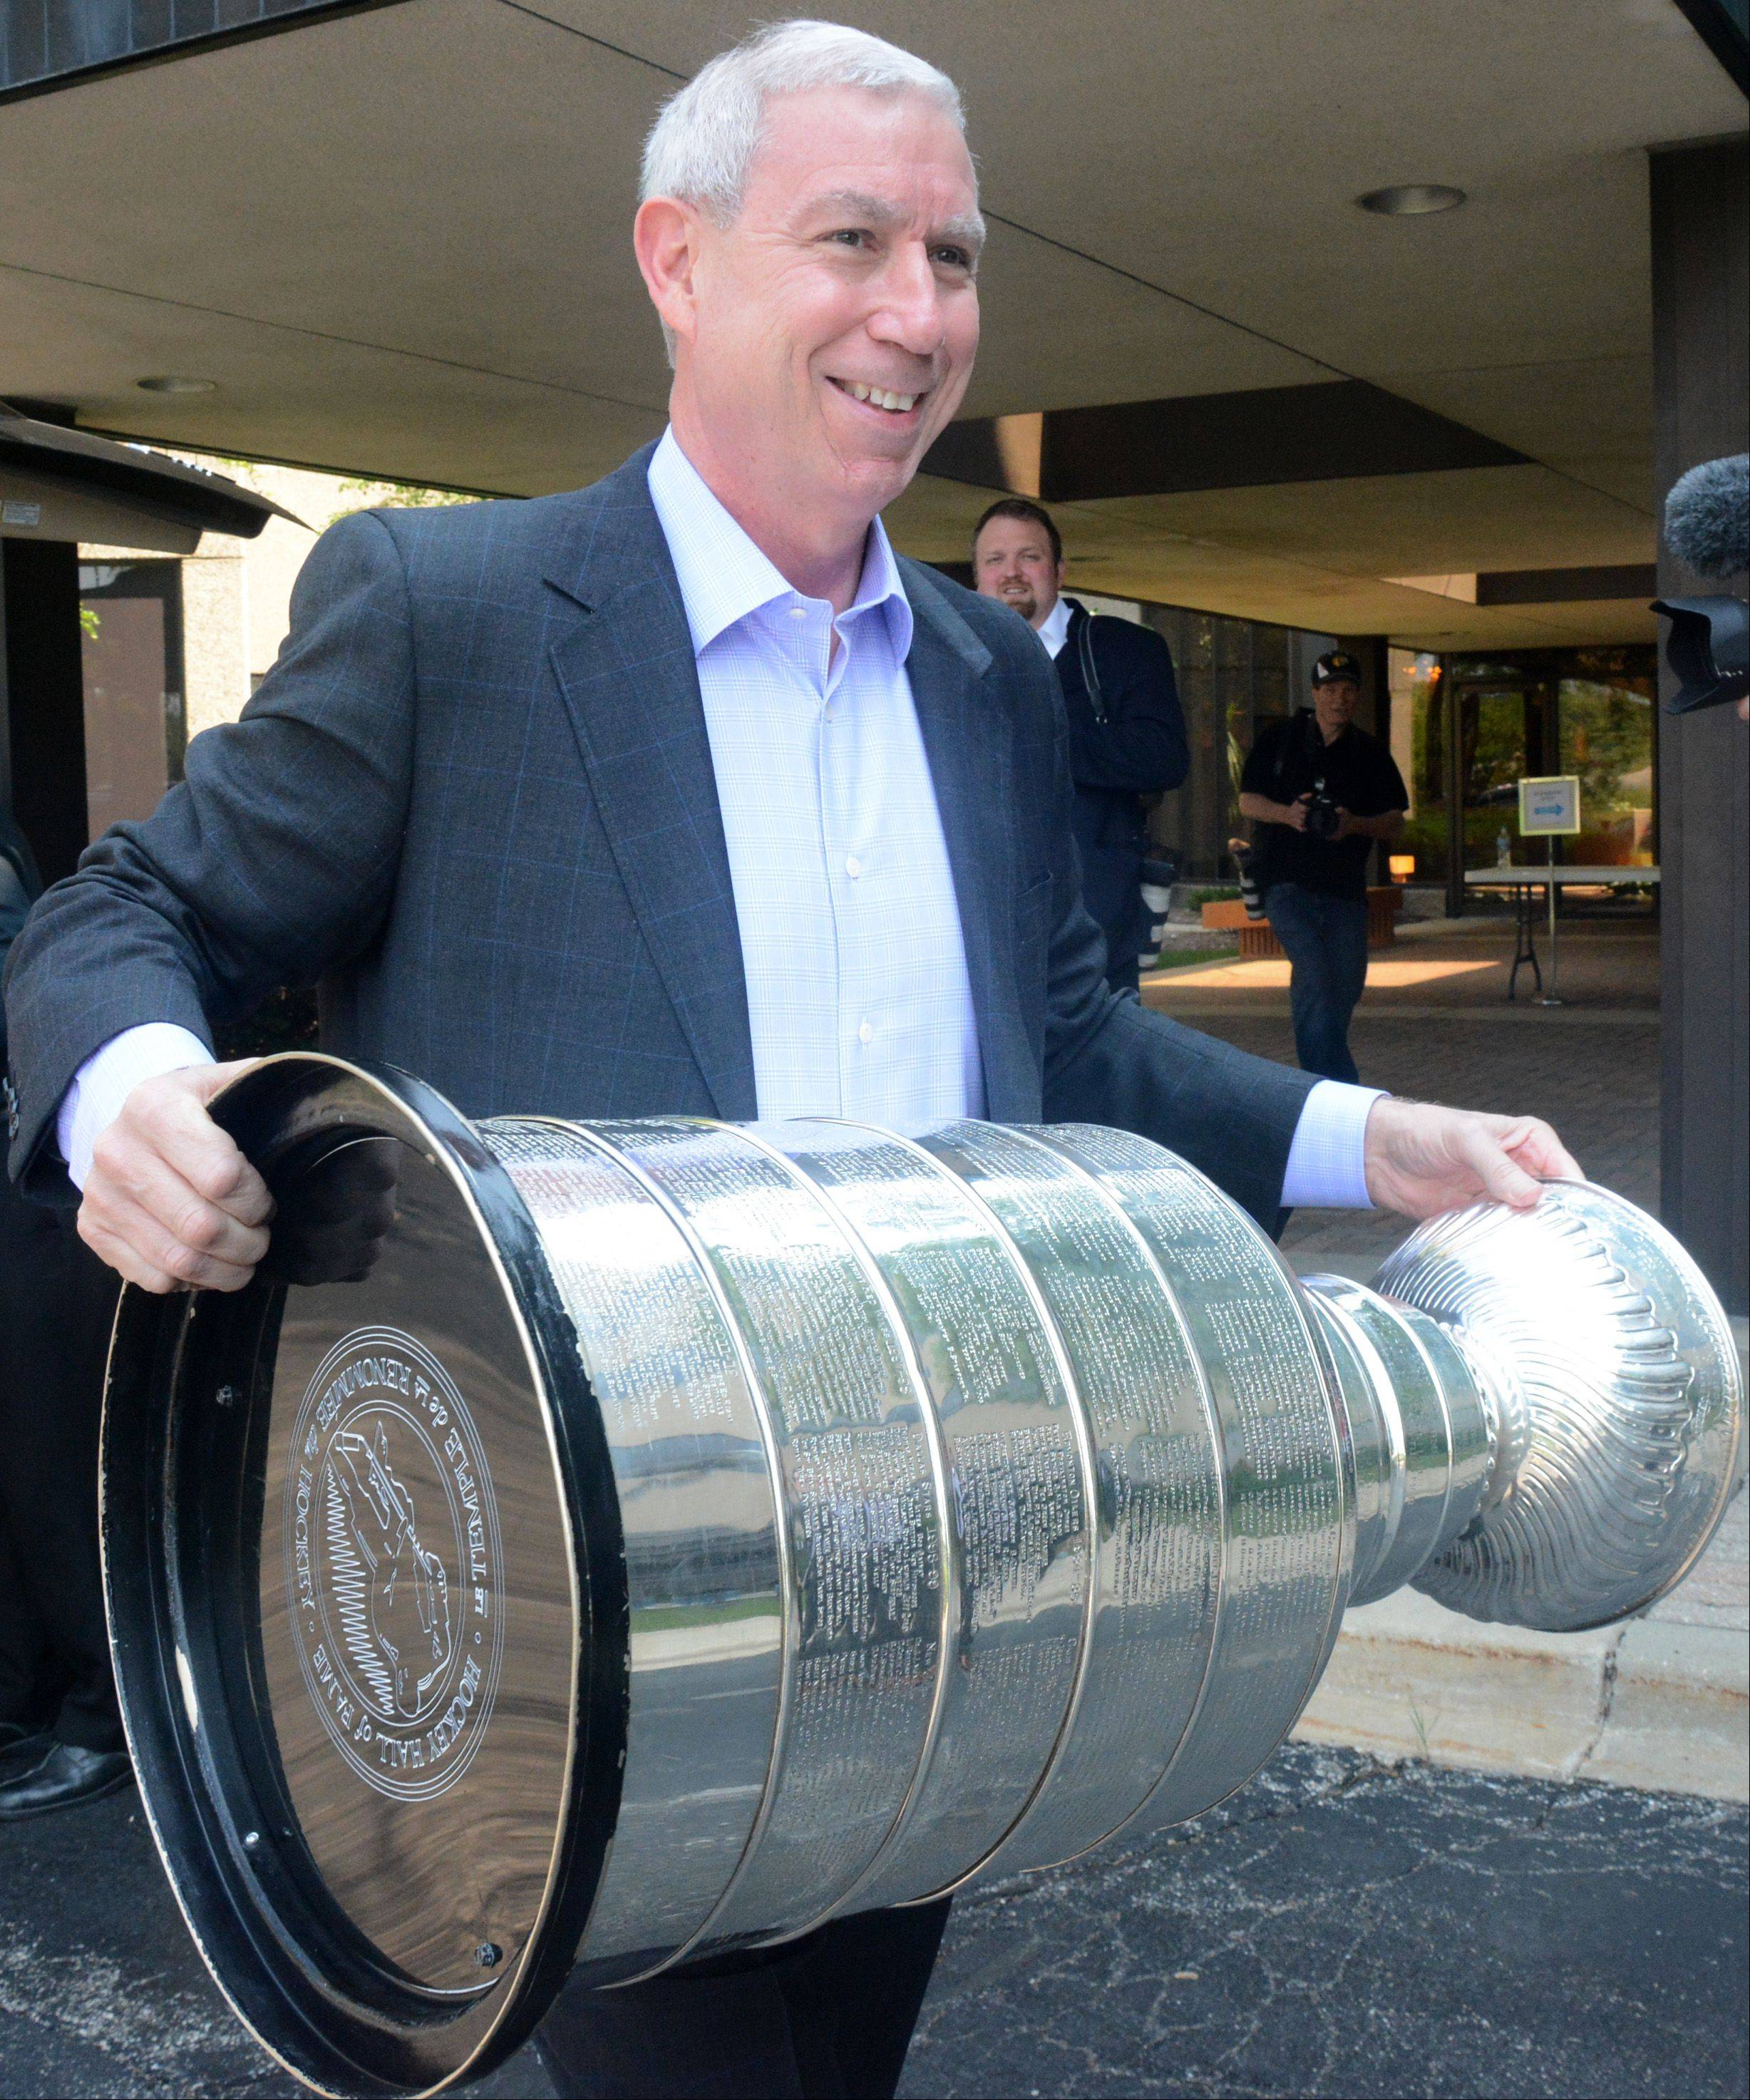 John McDonough carries the Stanley Cup into the Daily Herald office Friday in Arlington Heights.